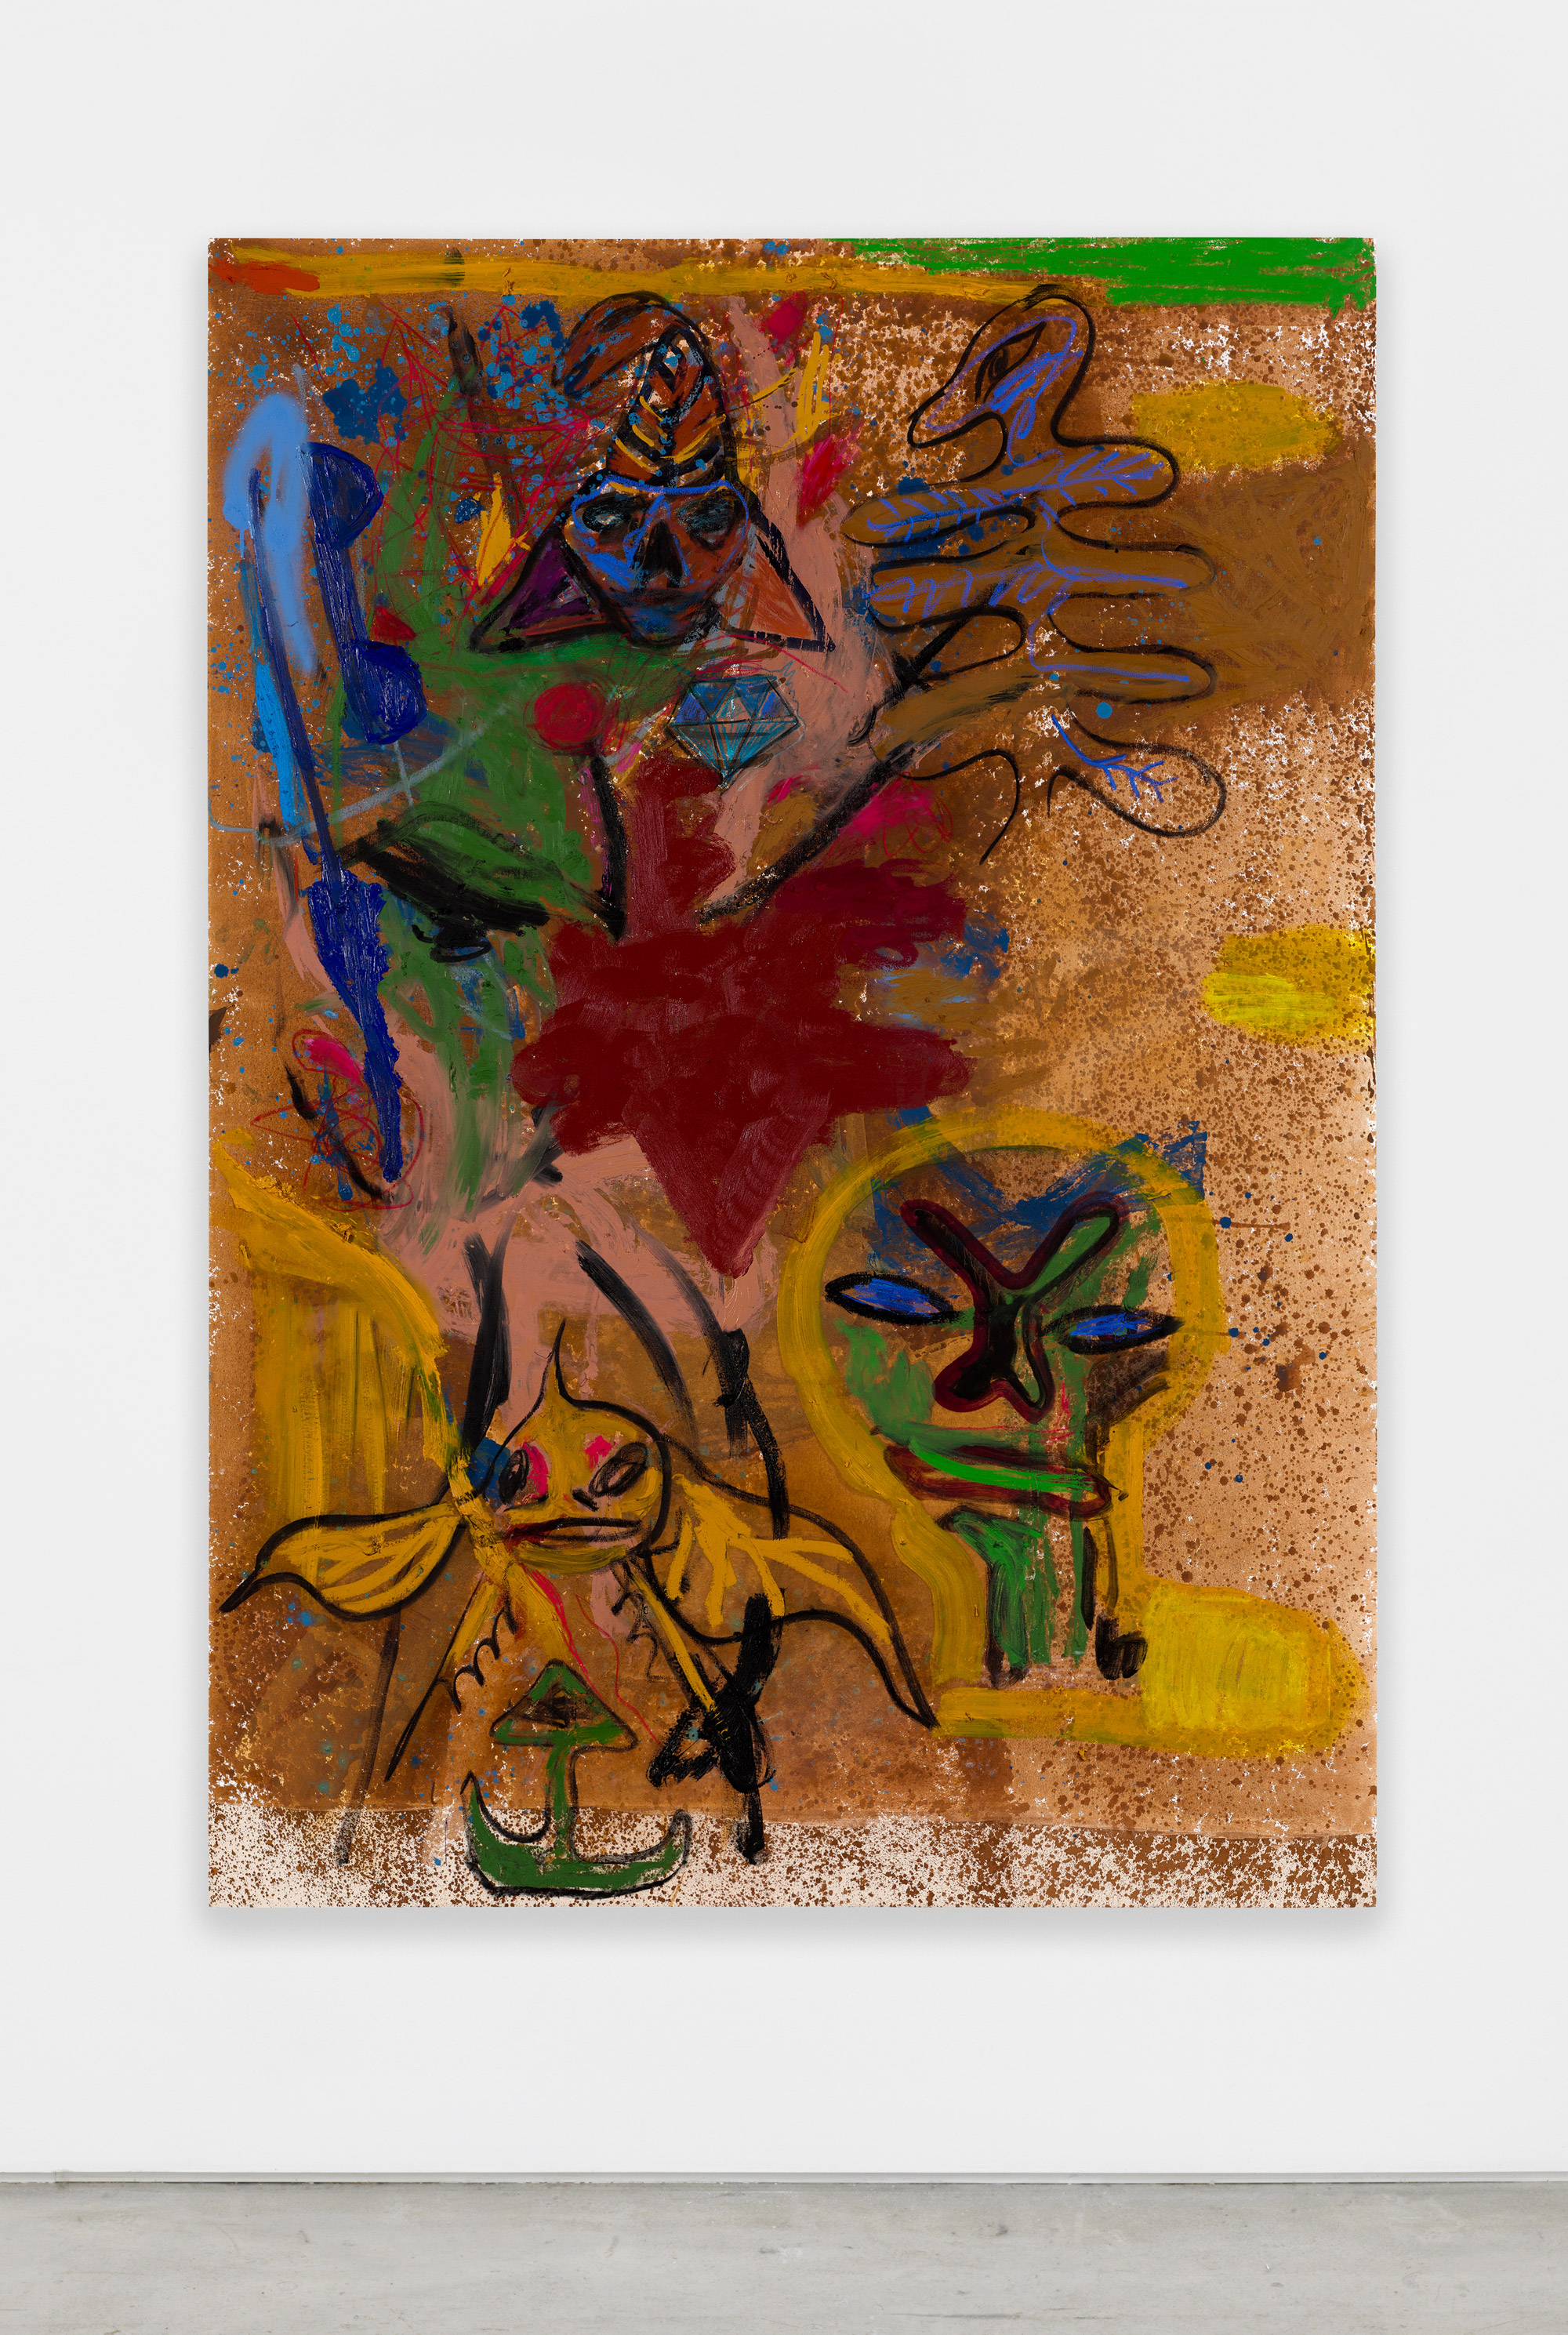 Bill Saylor, Untitled, 2017, oil, flashe, charcoal, spray paint on canvas, 90h x 64w in.